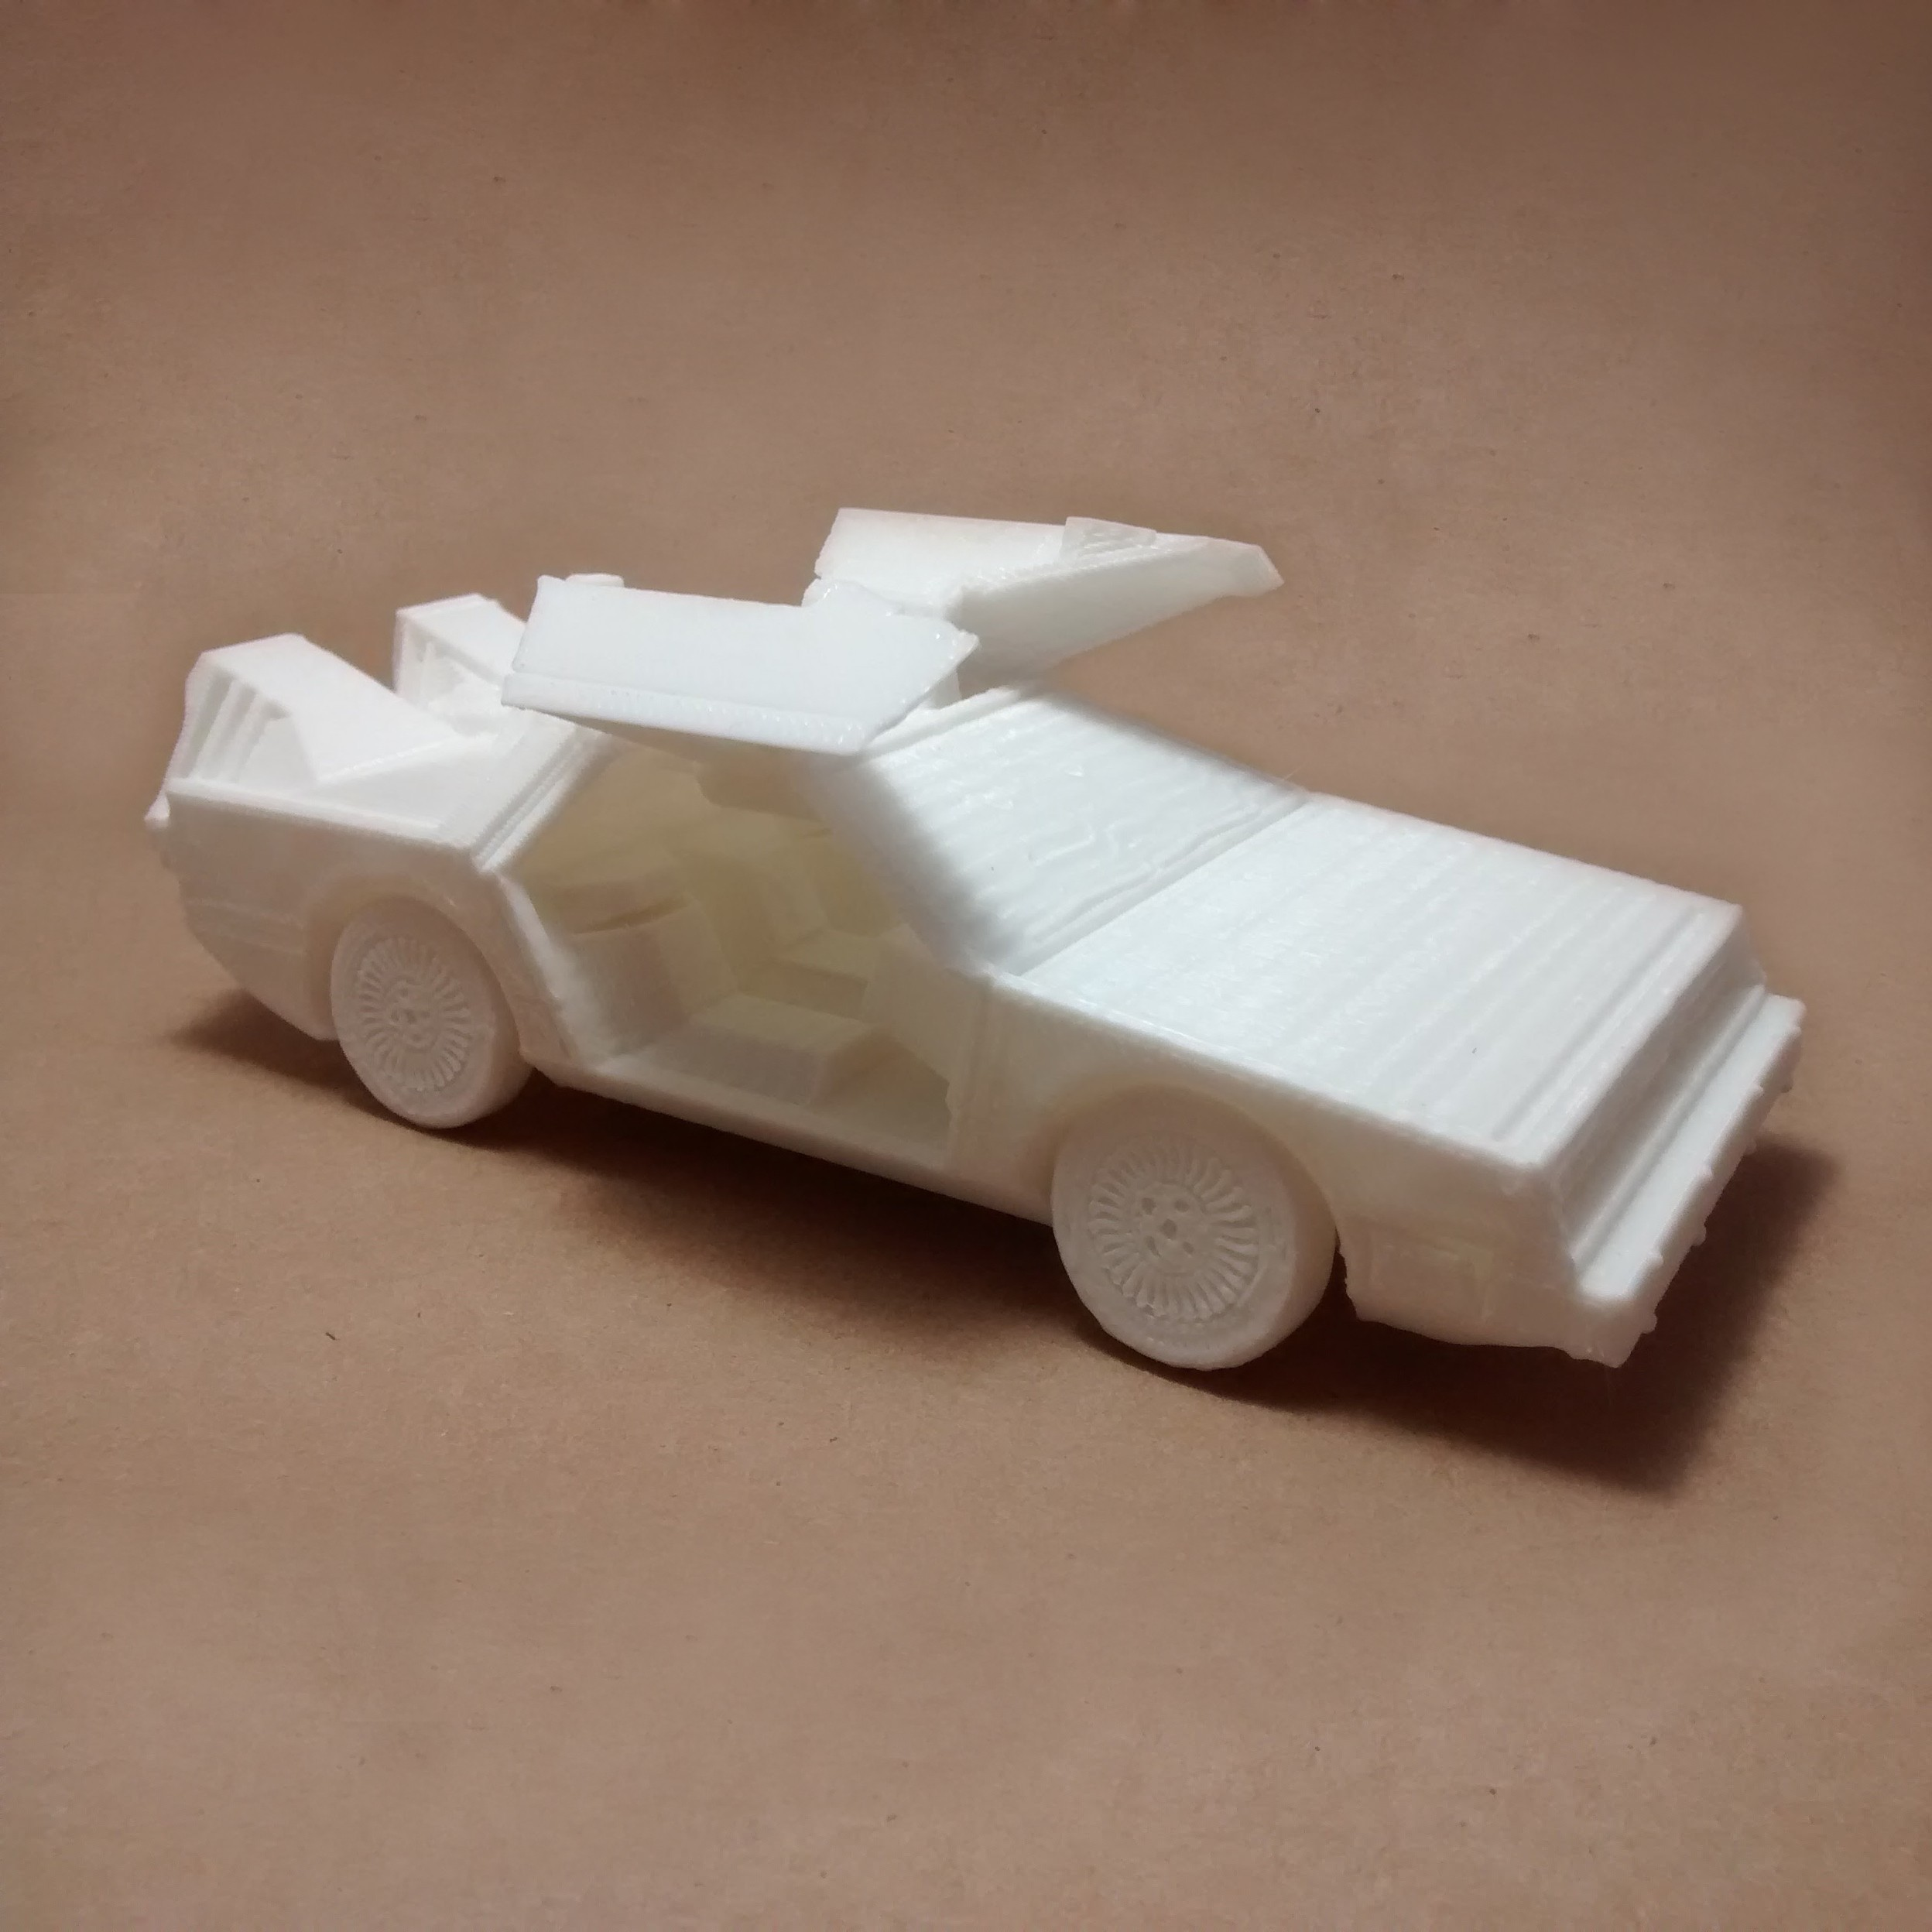 4.jpg Download STL file DeLorean DMC-12 (Back to the Future) PRINT-IN-PLACE • Template to 3D print, Atomicosstudio